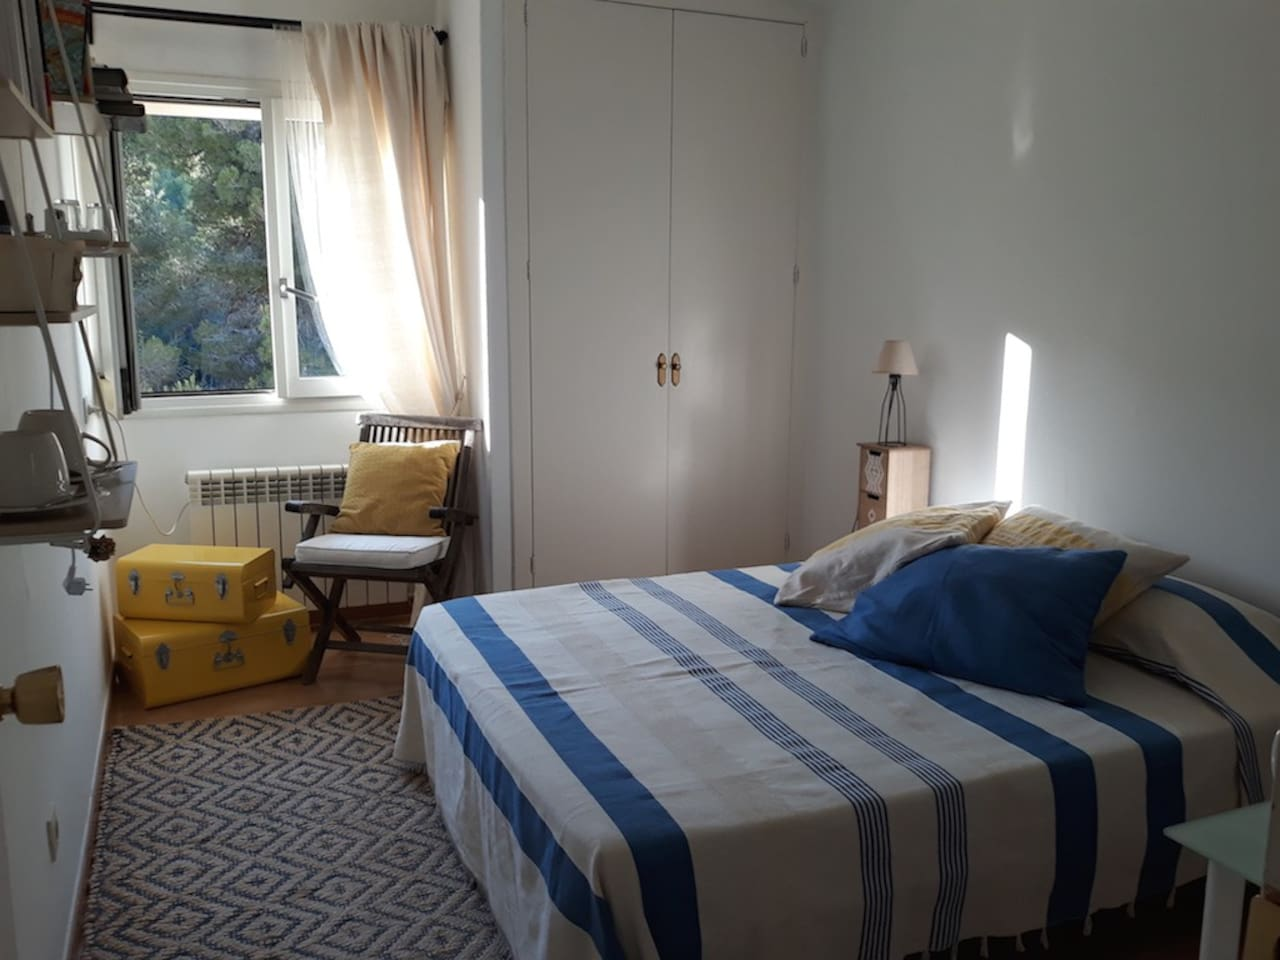 Bedoroom with double bed